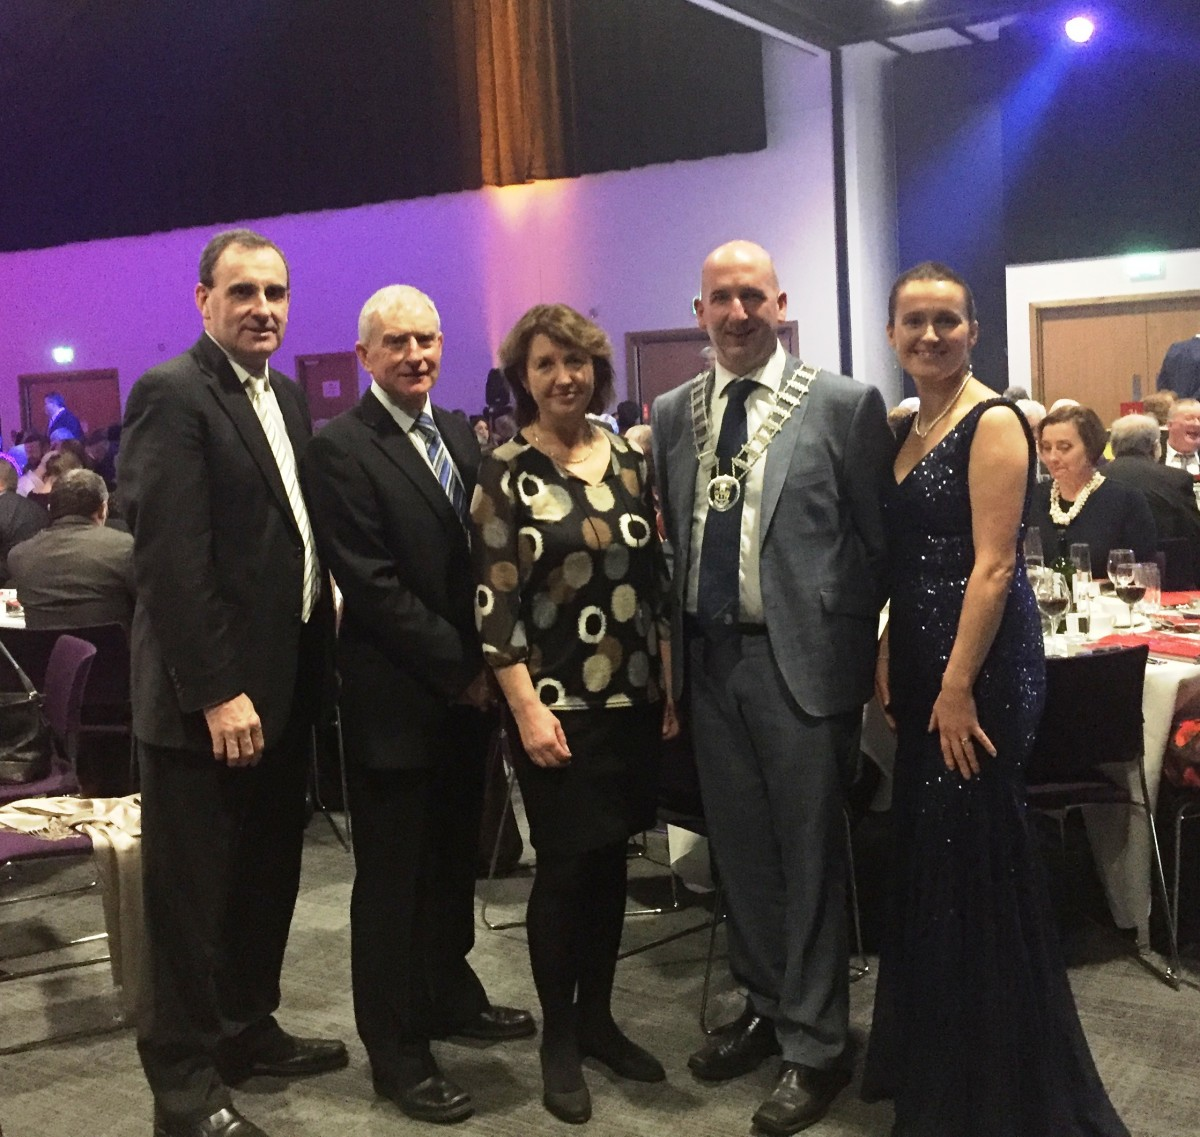 Gerard Dollard, Deputy Chief Executive, Clare County Council; Ger Hoey and Laura Ward, Clare Bus, Cllr. Paul Murphy, Leas Cathaoirleach, Clare County Council and Philomena O'Connell, Pride of Place Coordinator, Clare County Council.